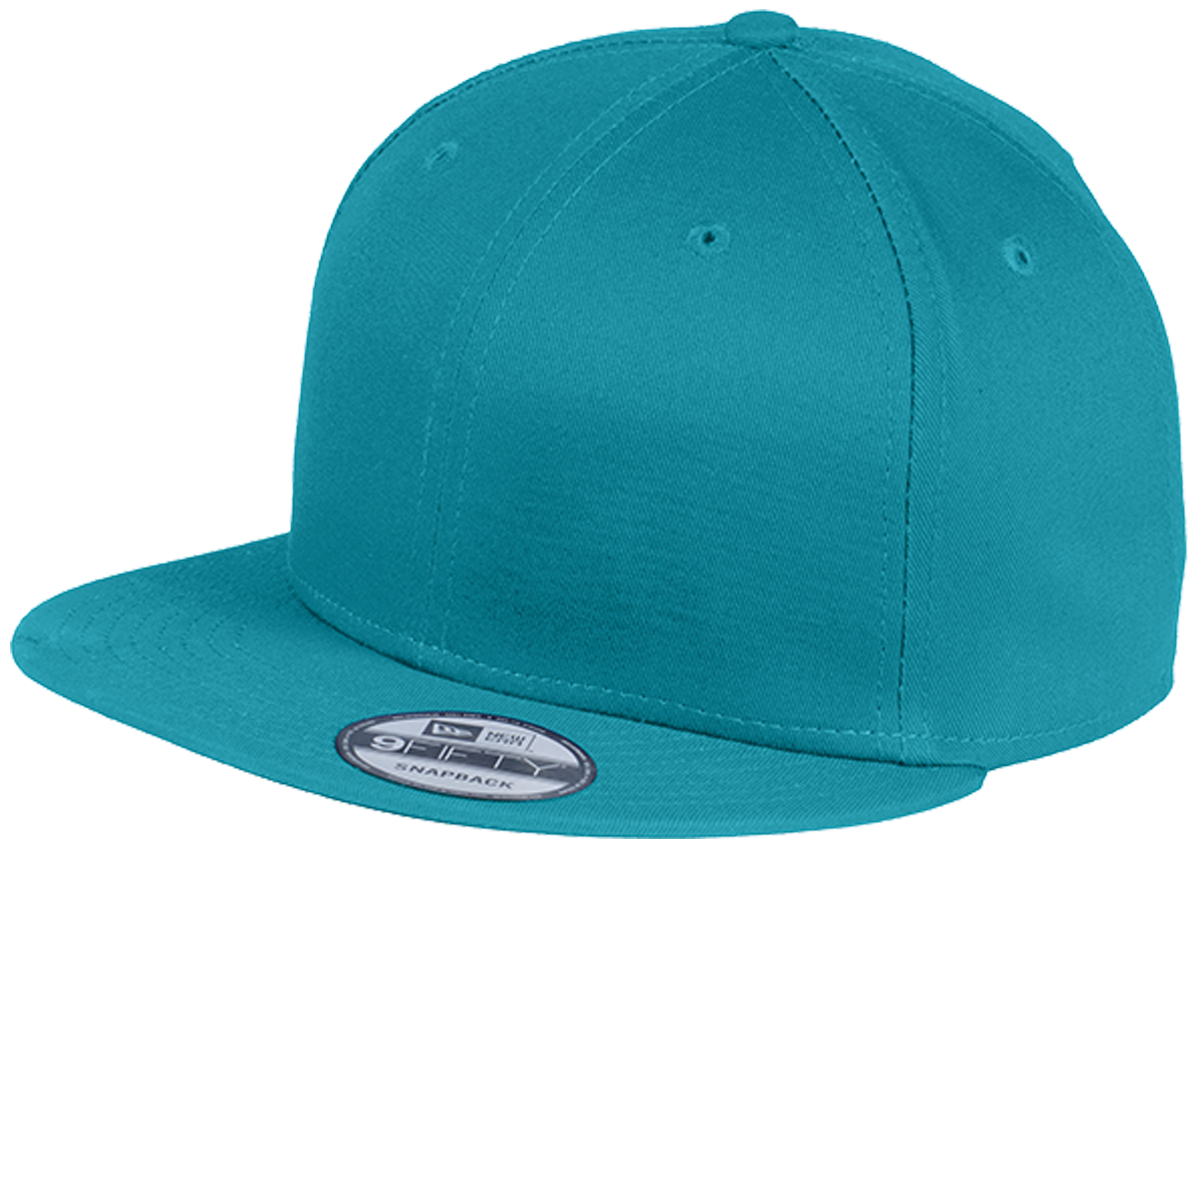 New Era Snapback Cap (Embroidered) - Embroidery side